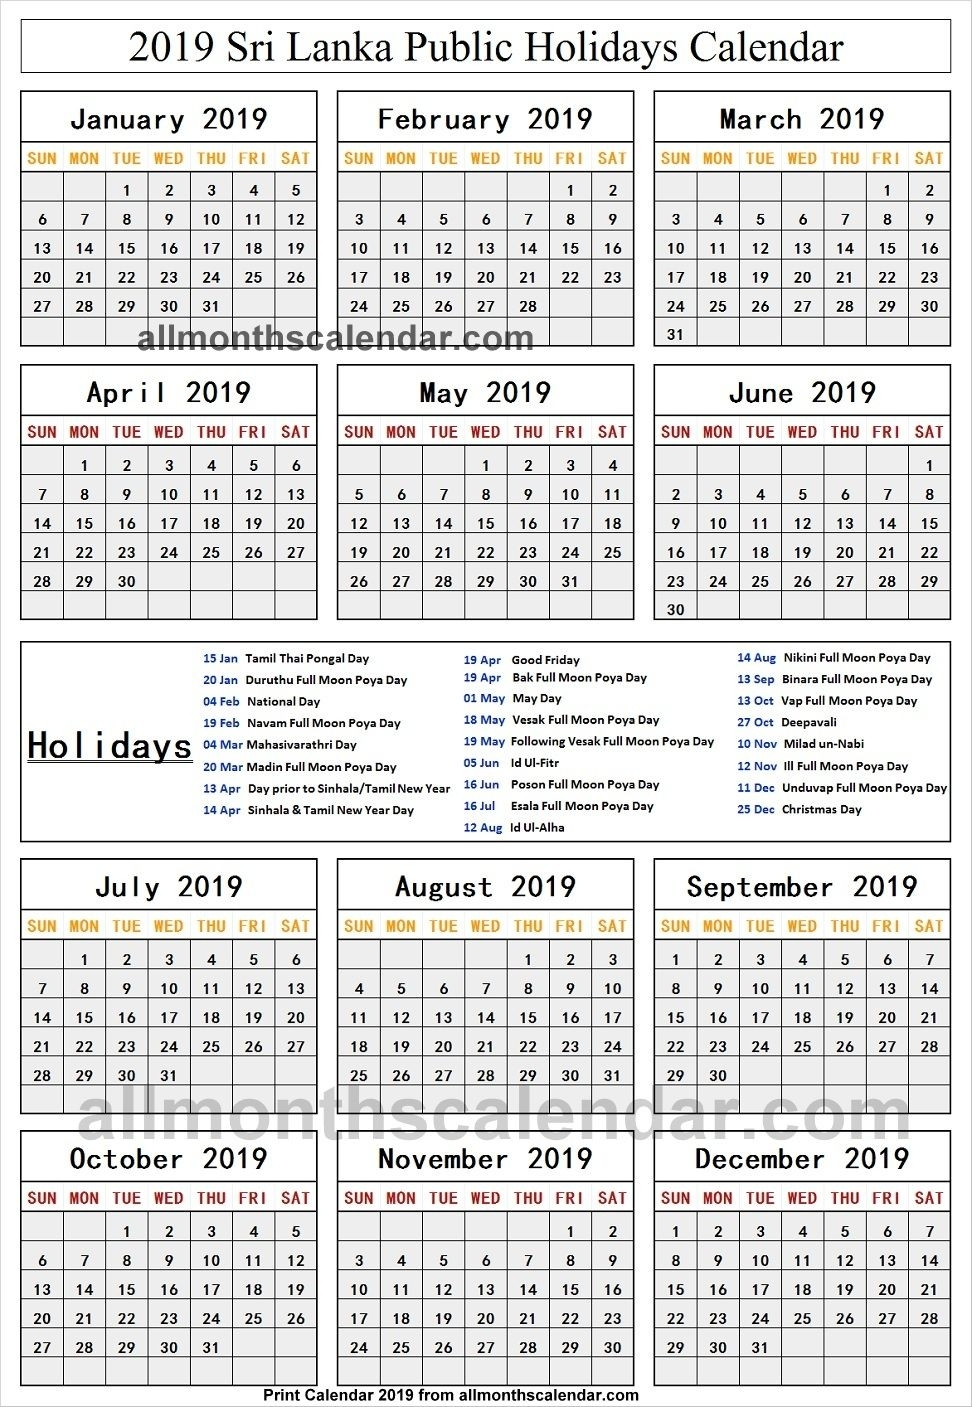 Sri Lanka Holiday List 2019 | Holidays Calendar 2019 | Sri Lanka within List Ofhoidays In Sri Lanka